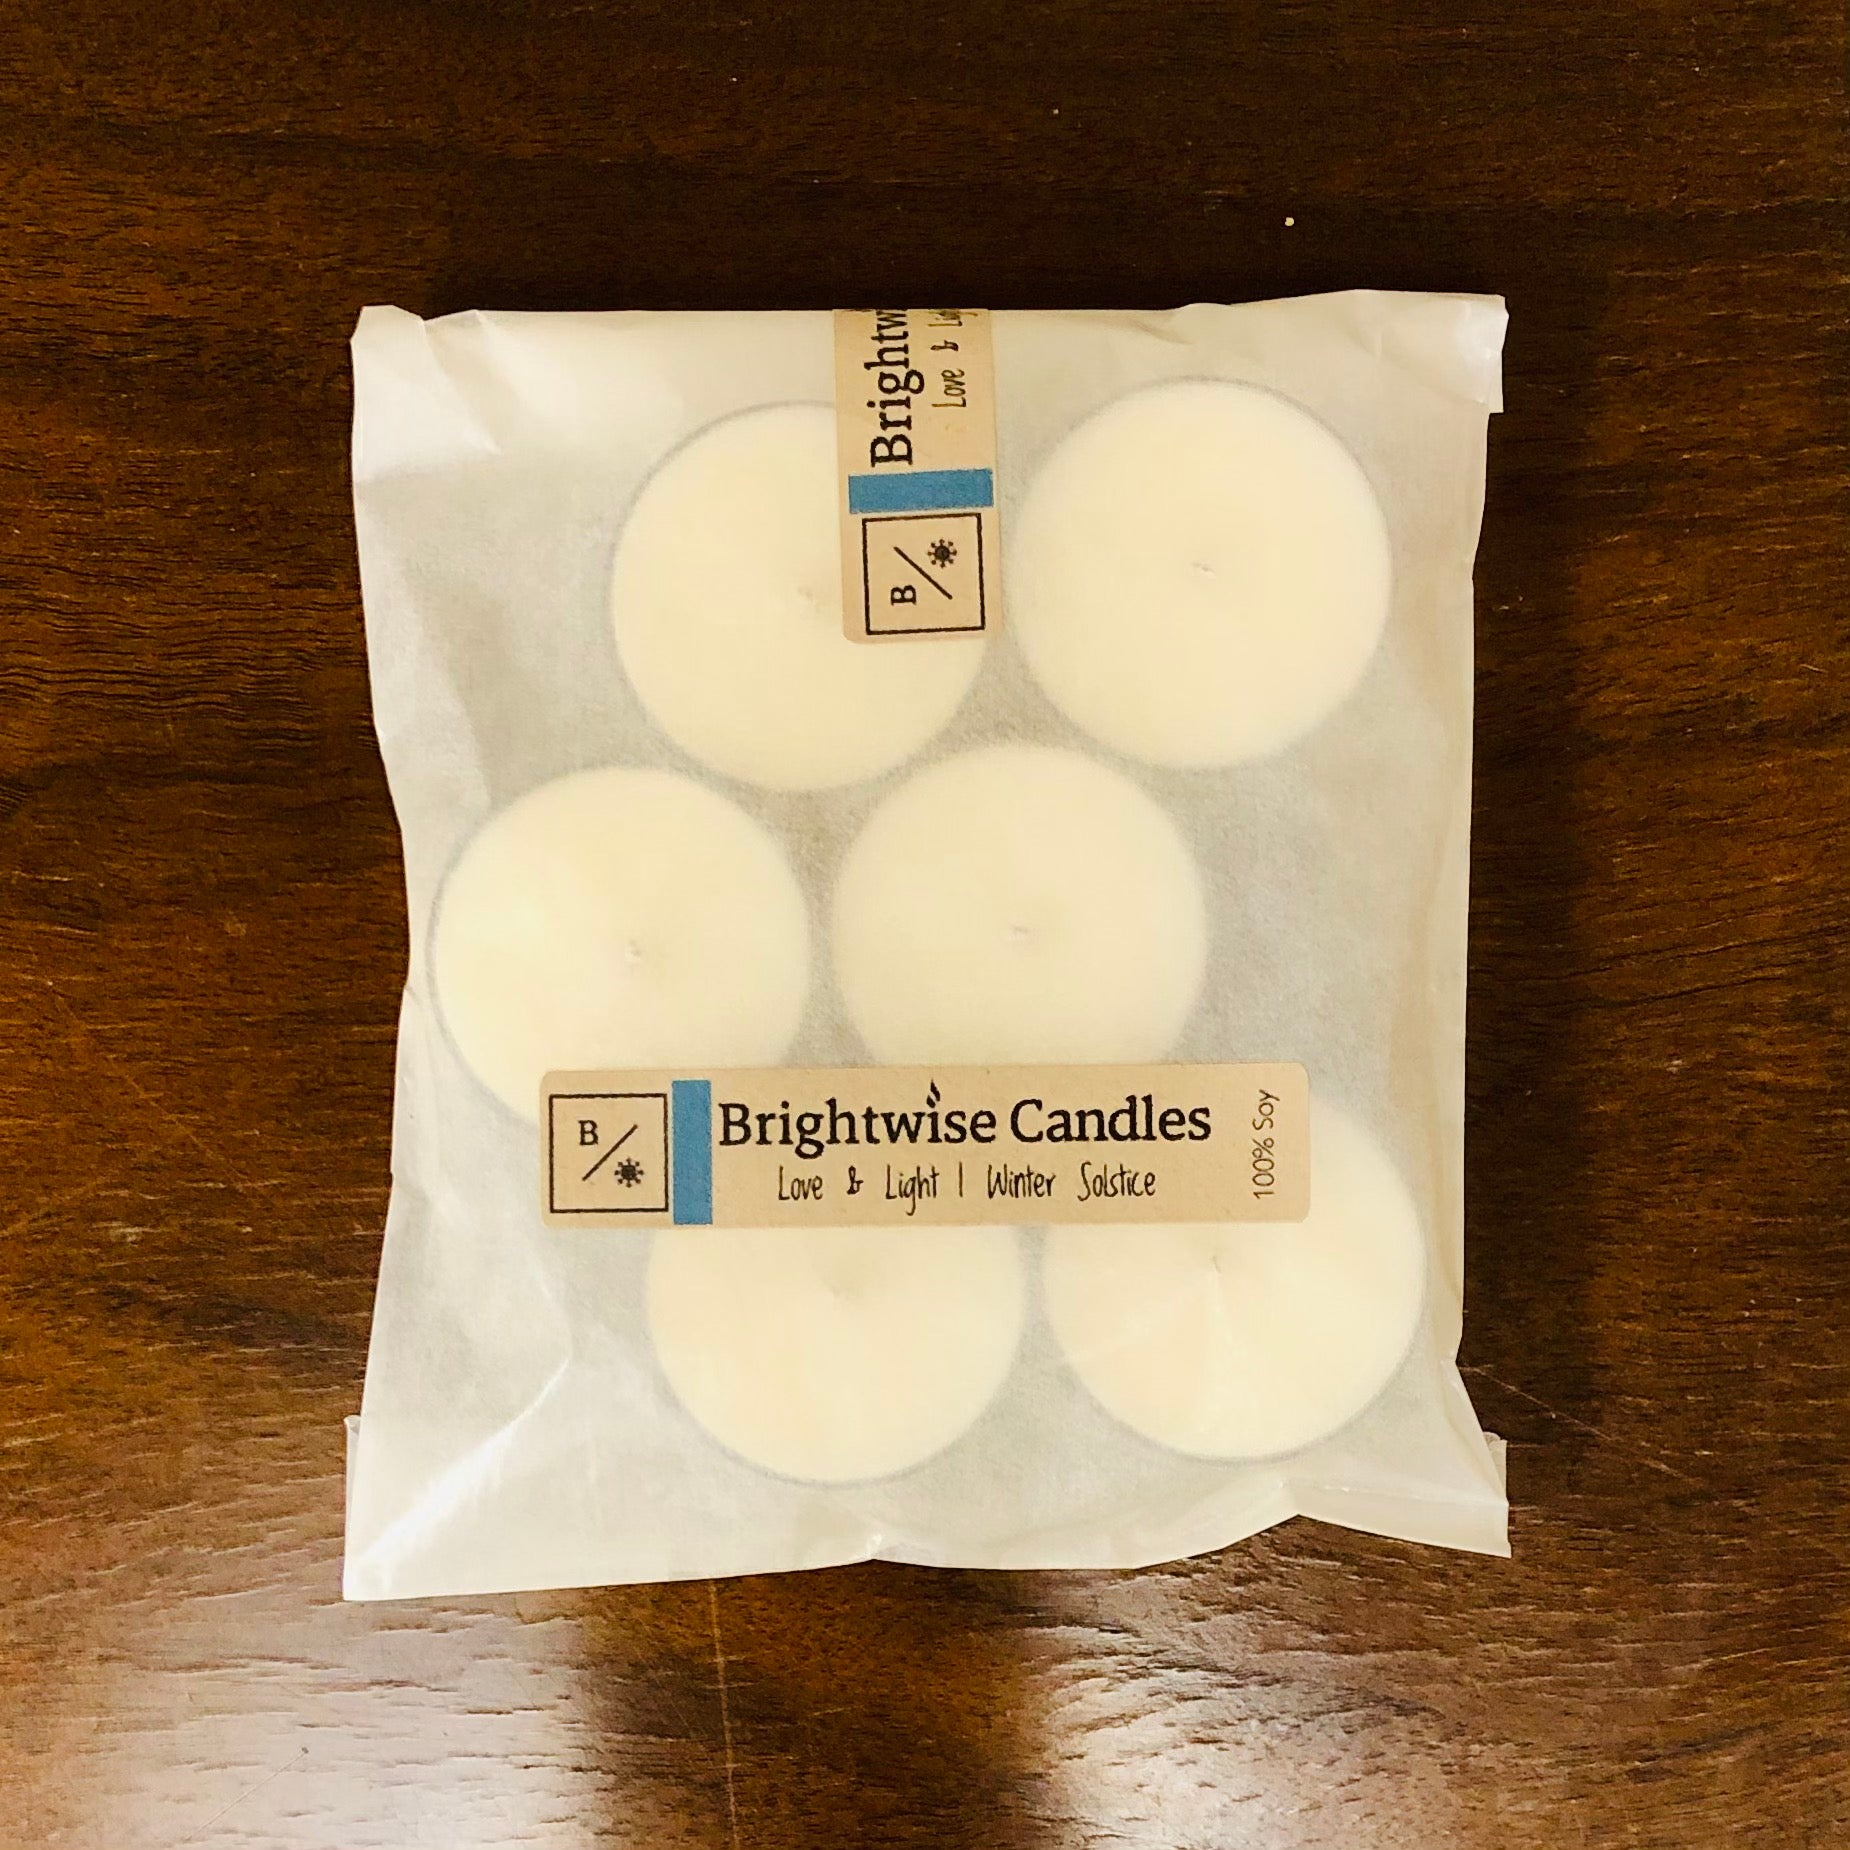 Love & Light Tealights - Brightwise Candles